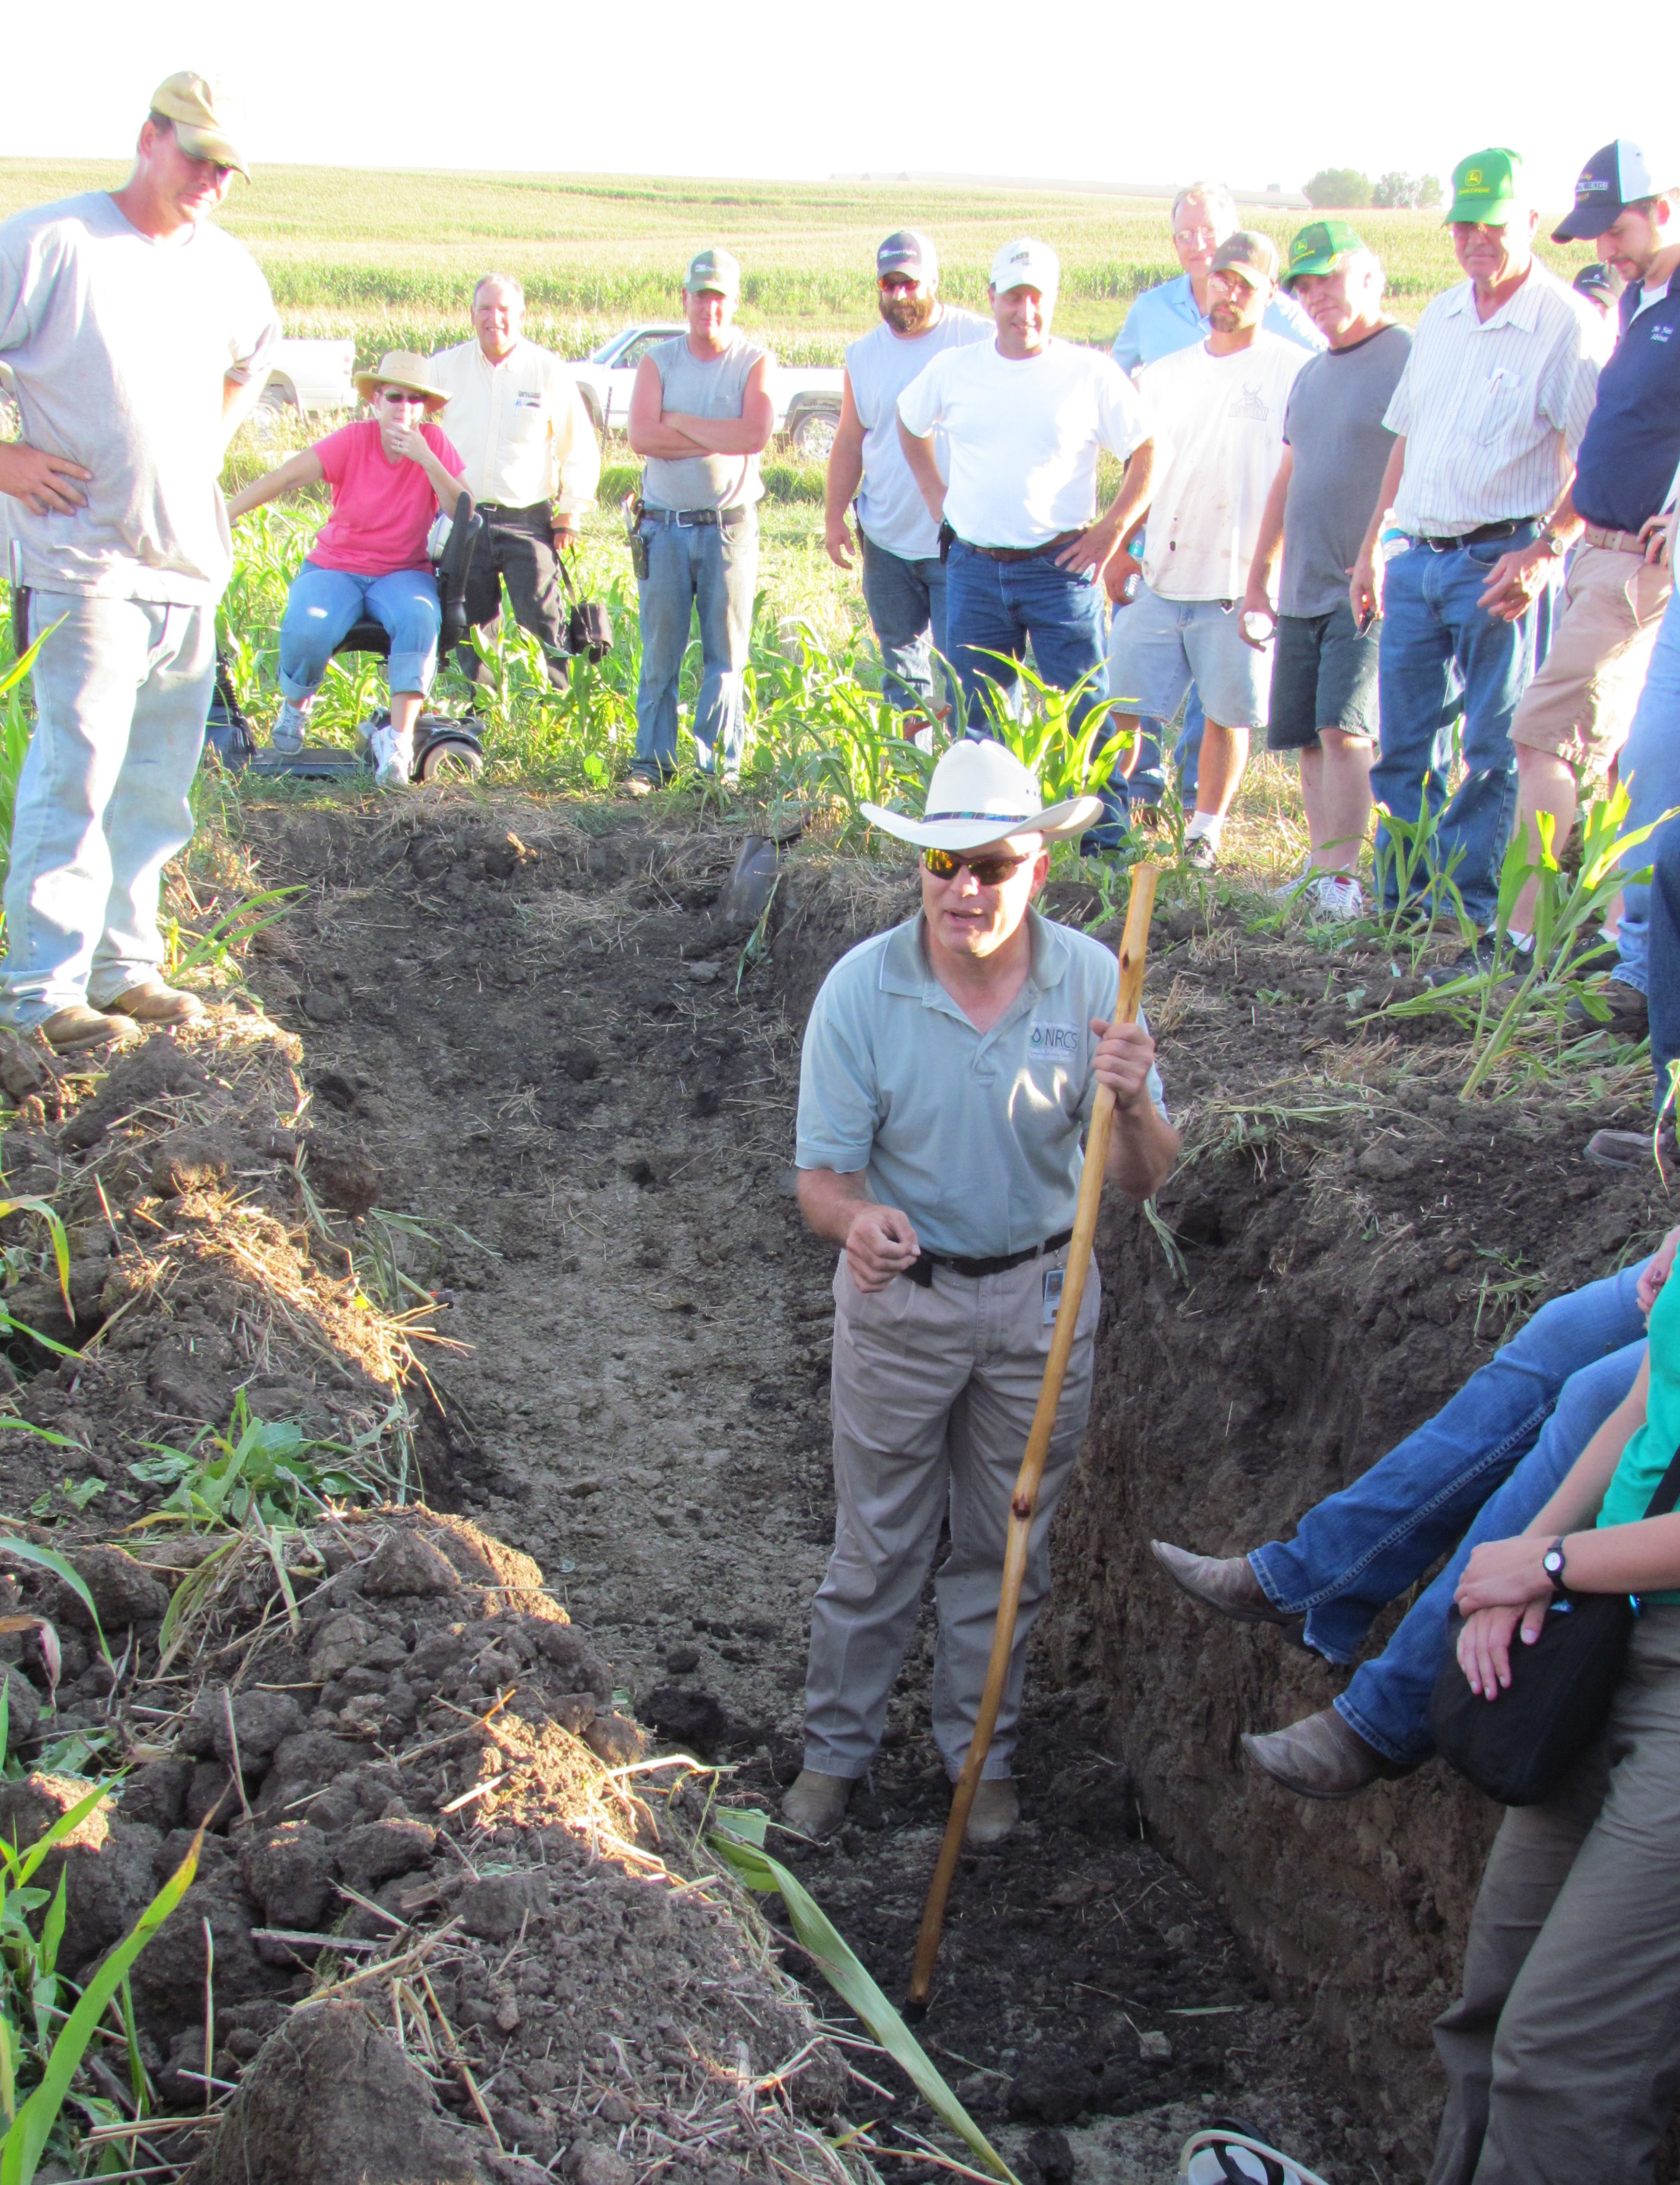 Soil microbiology iowa learning farms for Soil microbiology